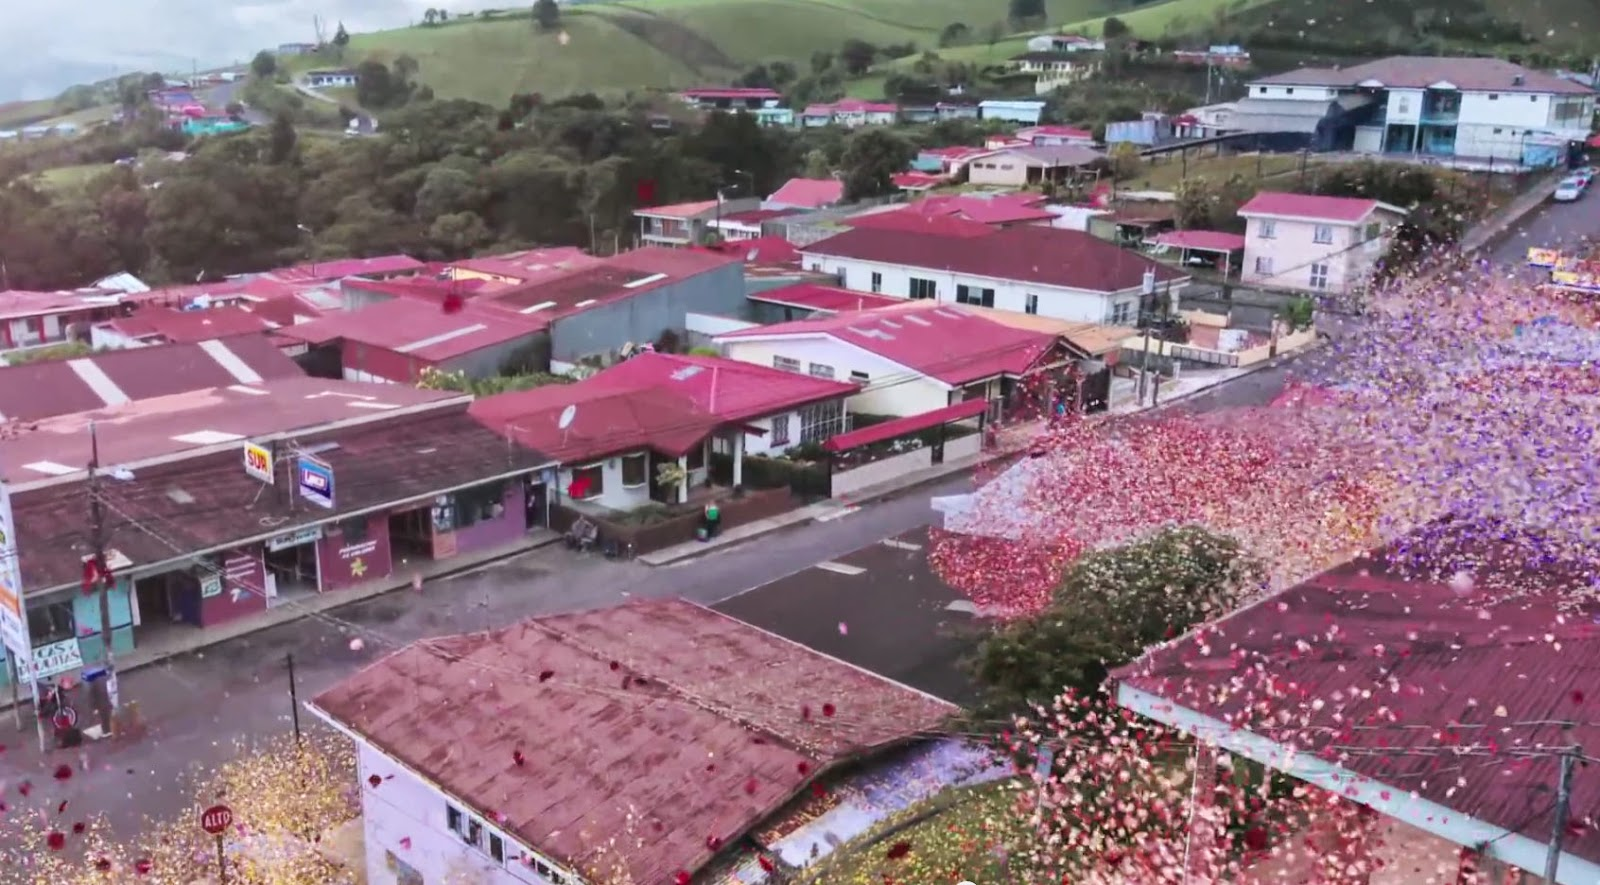 Sharing An Amazing Commercial Featuring Millions Of Flower Petals Erupting From A Volcano Covering Town Near The Irazu In Central Costa Rica